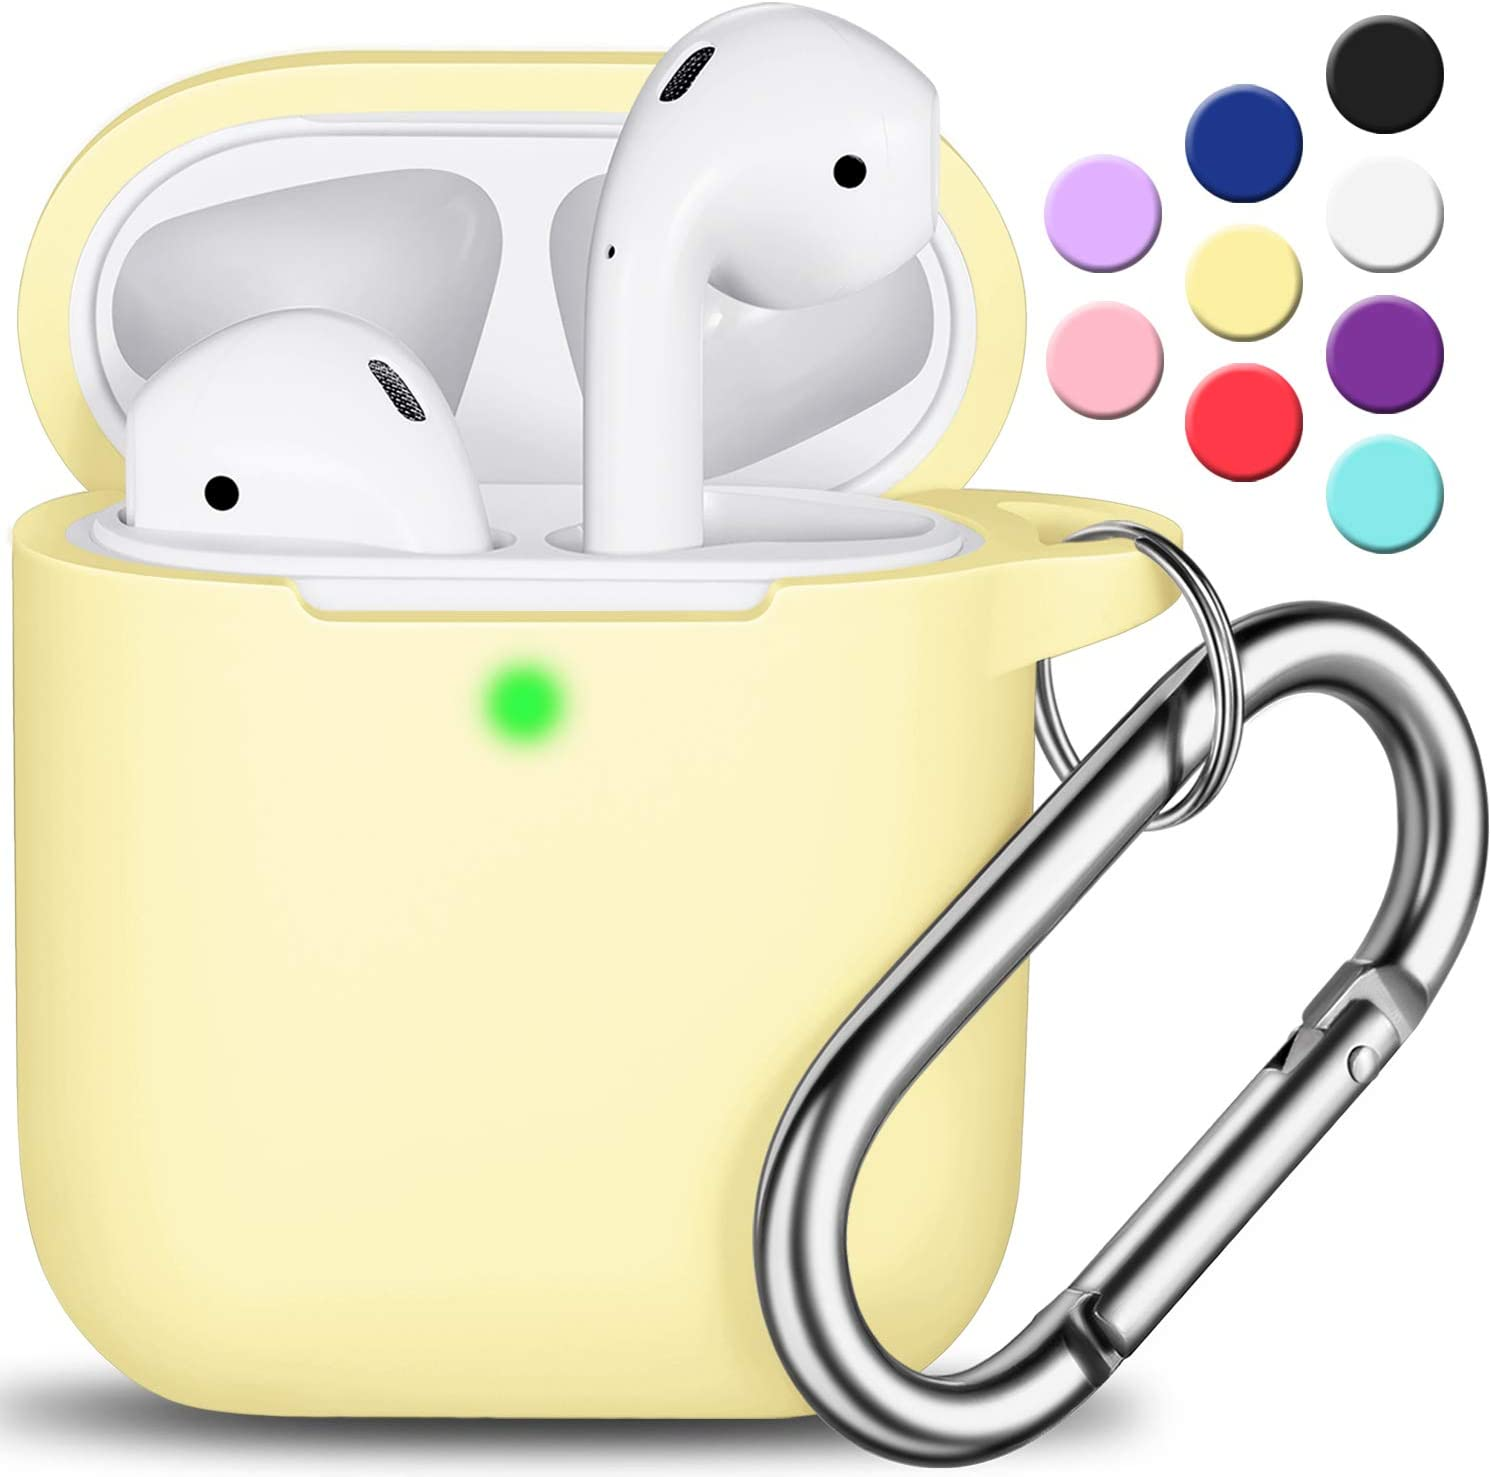 AirPods Case Cover with Keychain, Full Protective Silicone AirPods Accessories Skin Cover for Women Girl with Apple AirPods Wireless Charging Case,Front LED Visible-Cream Yellow